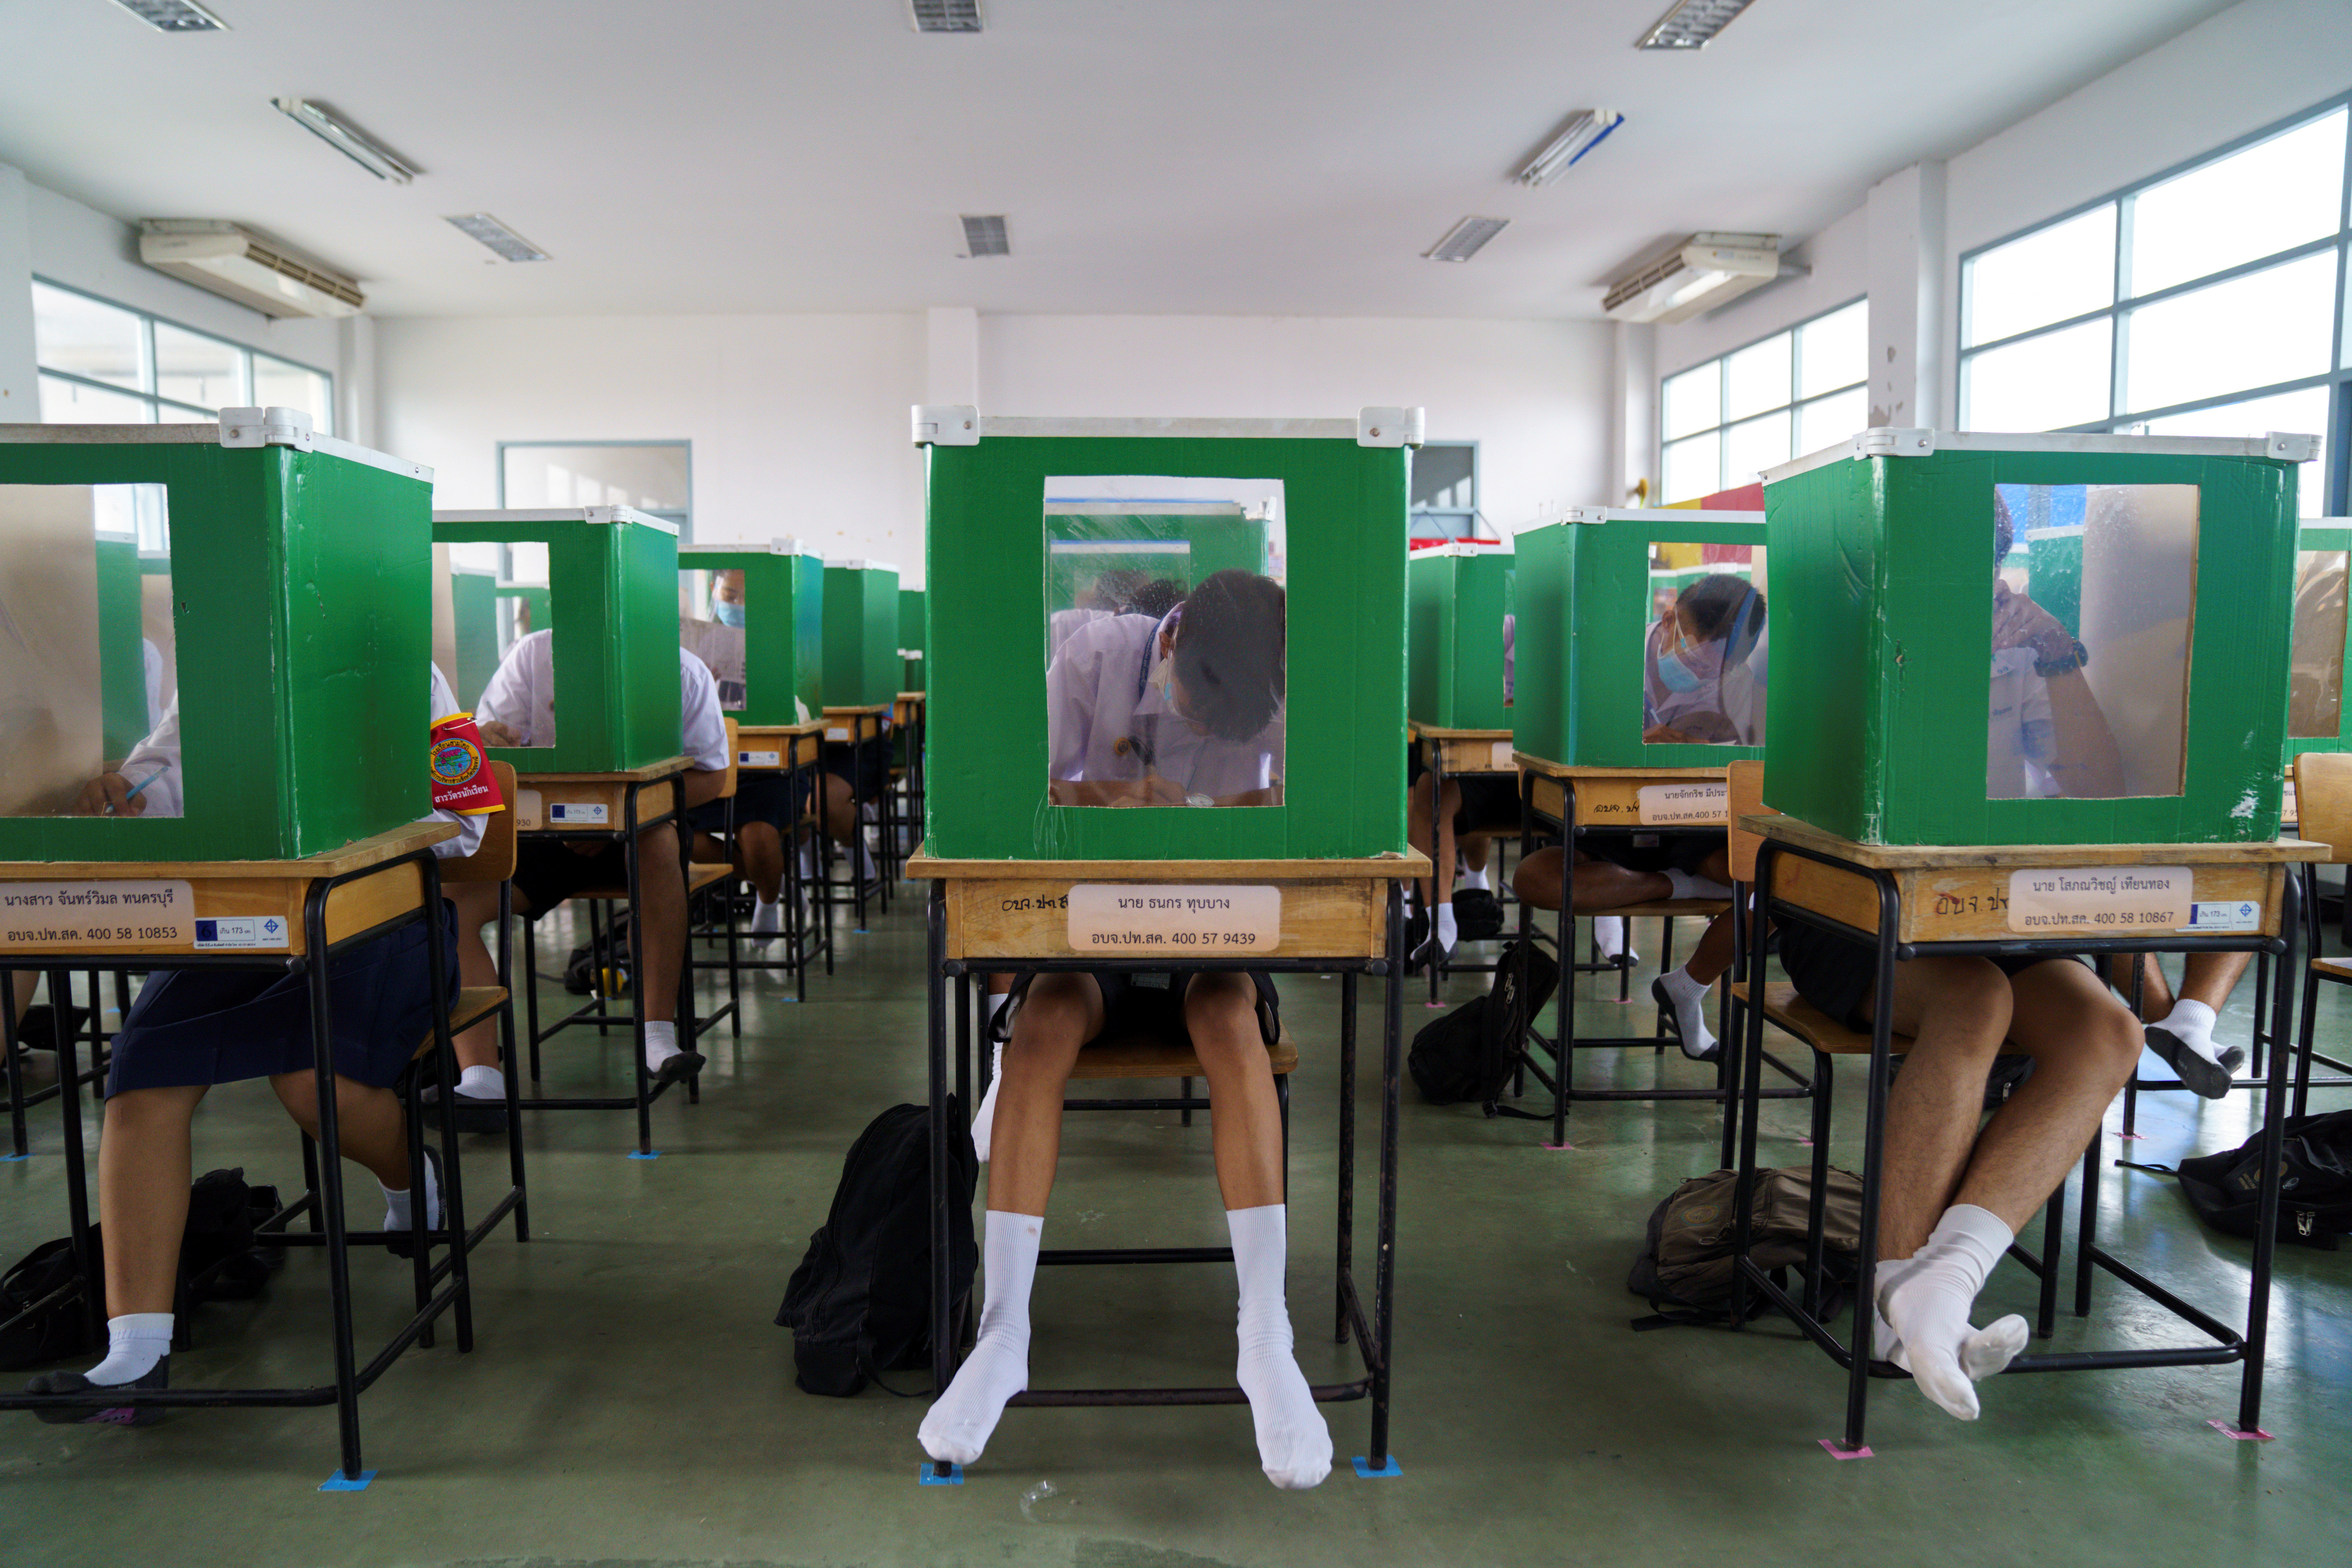 Students of Sam Khok school wearing face masks and face shields are seen inside old ballot boxes repurposed into partitions as they attend a class after the Thai government eased isolation measures and introduced social distancing to prevent the spread of the coronavirus disease (COVID-19), as schools nationwide reopen, at Pathum Thani province, Thailand, July 1, 2020. REUTERS/Athit Perawongmetha     TPX IMAGES OF THE DAY - RC24KH9TZD5O